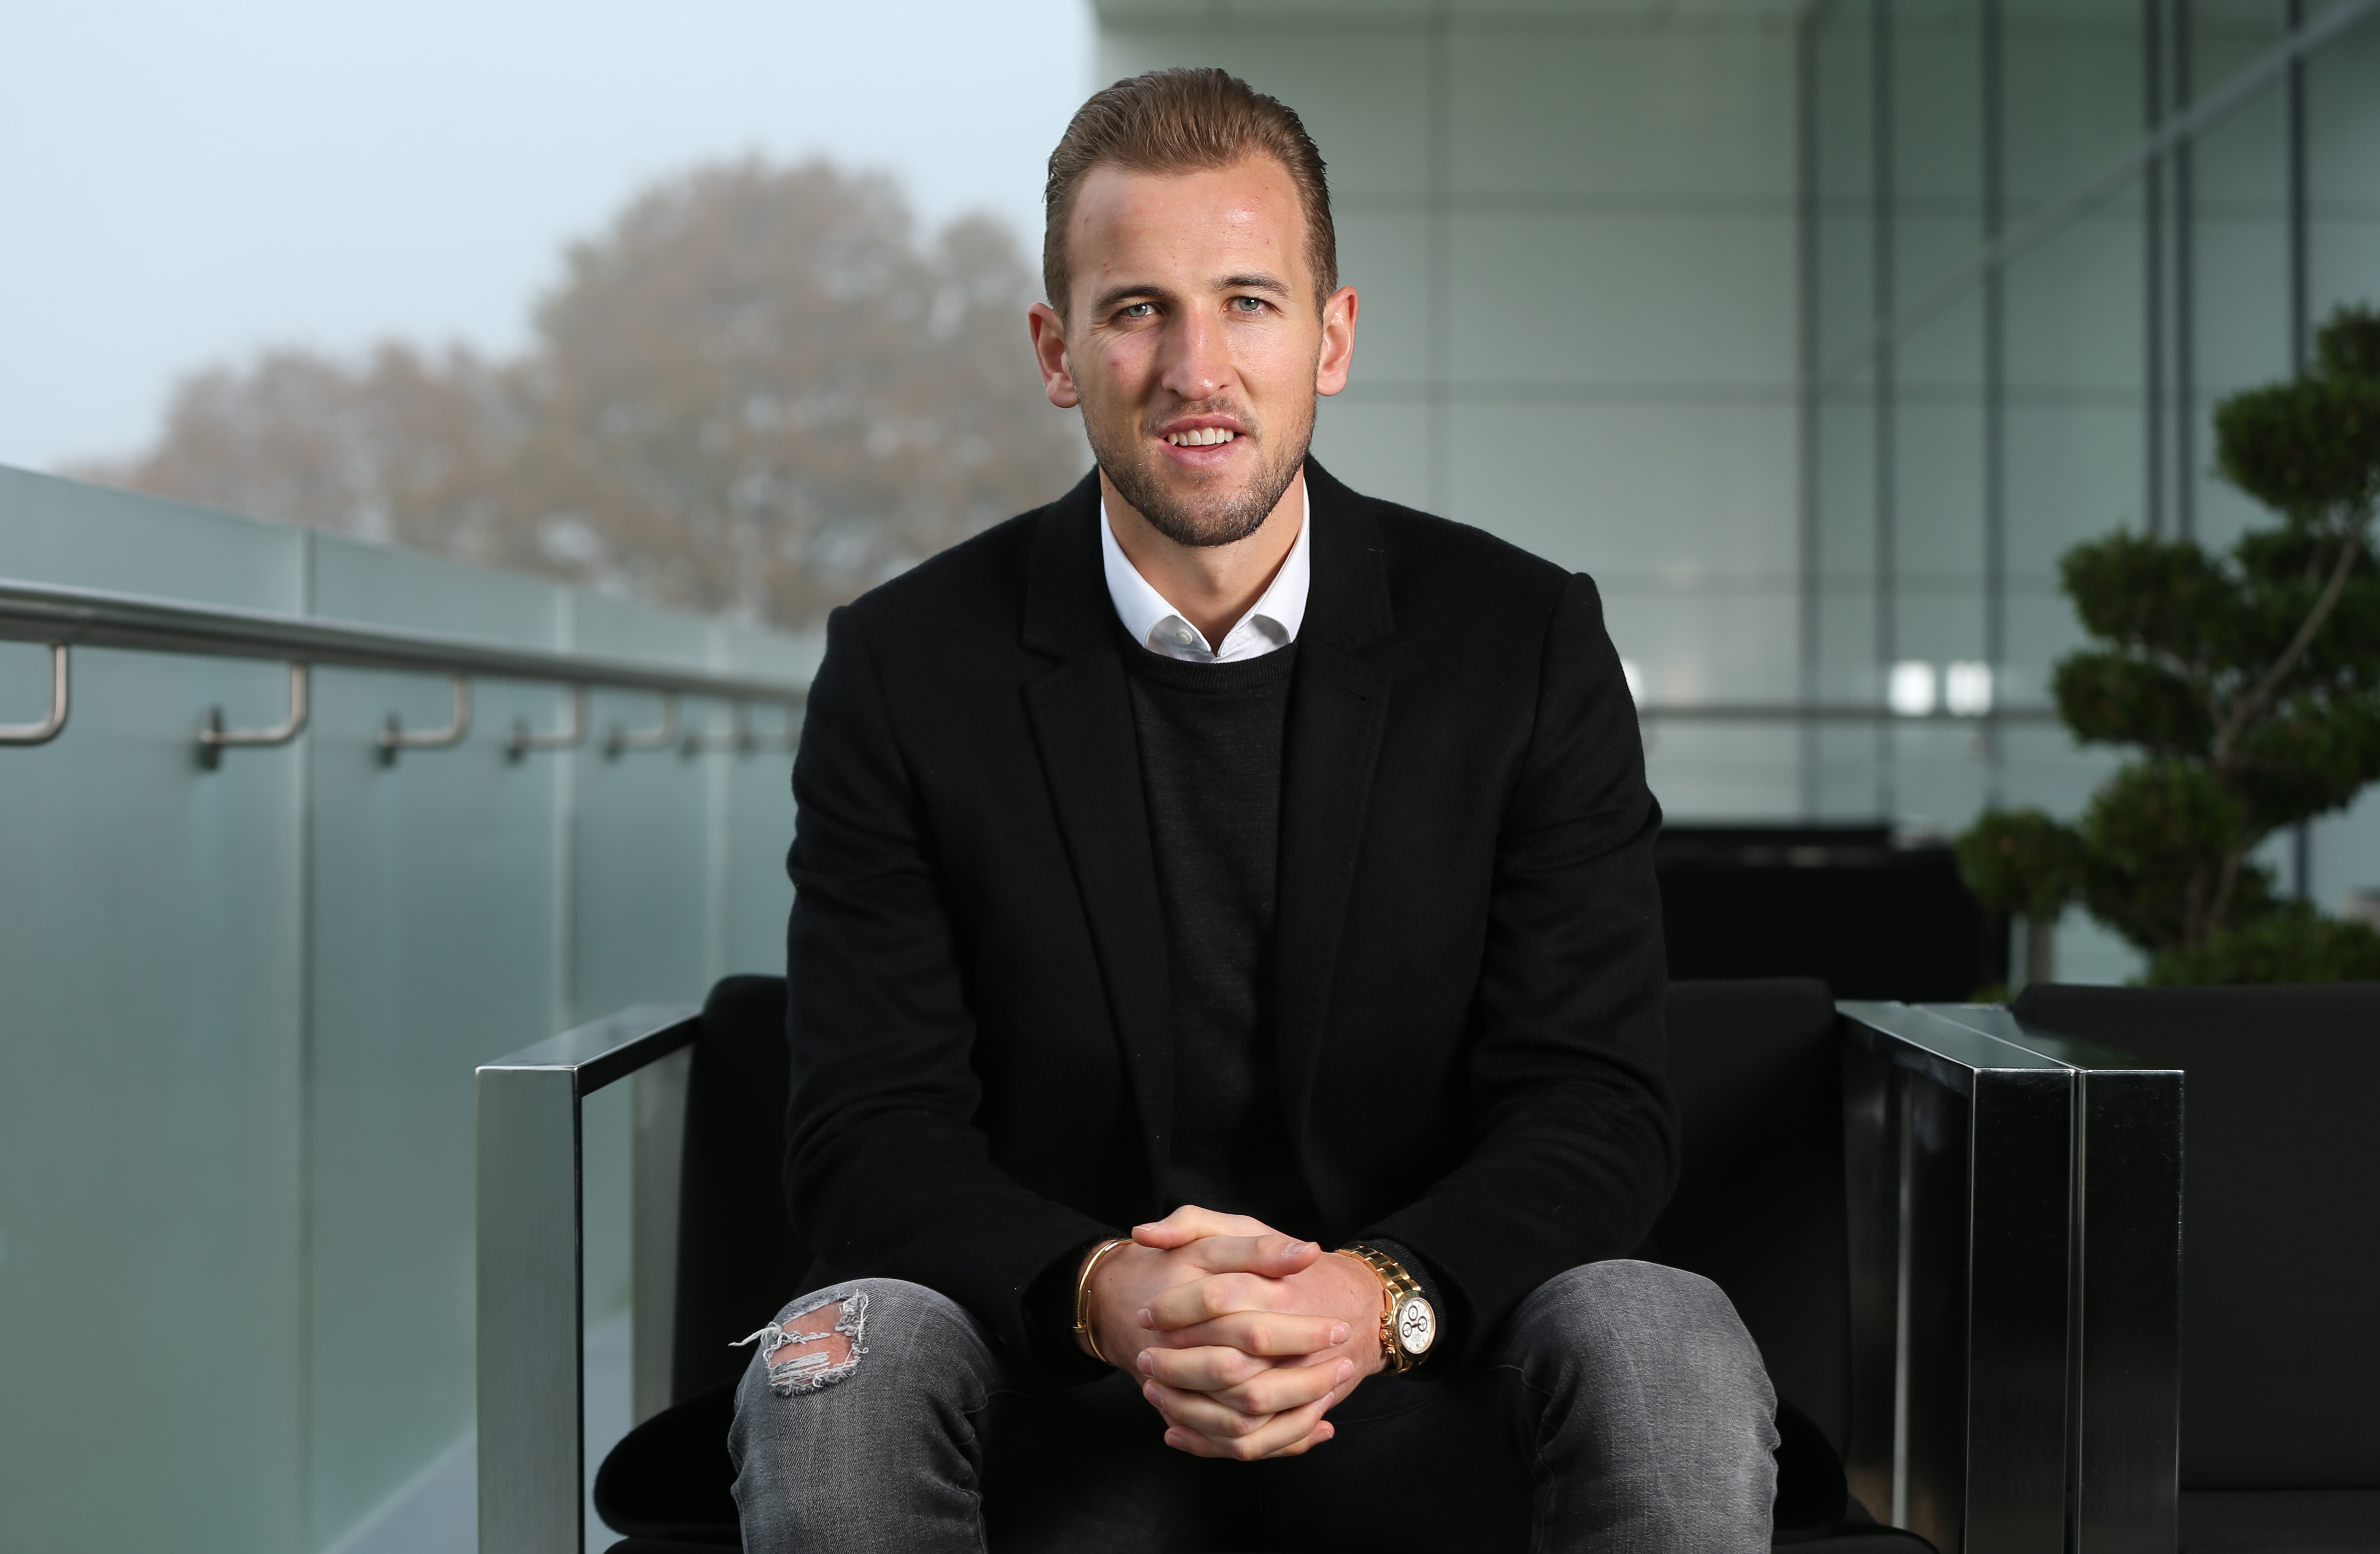 627248870-harry-kane-signs-new-contract-at-tottenham-hotspur